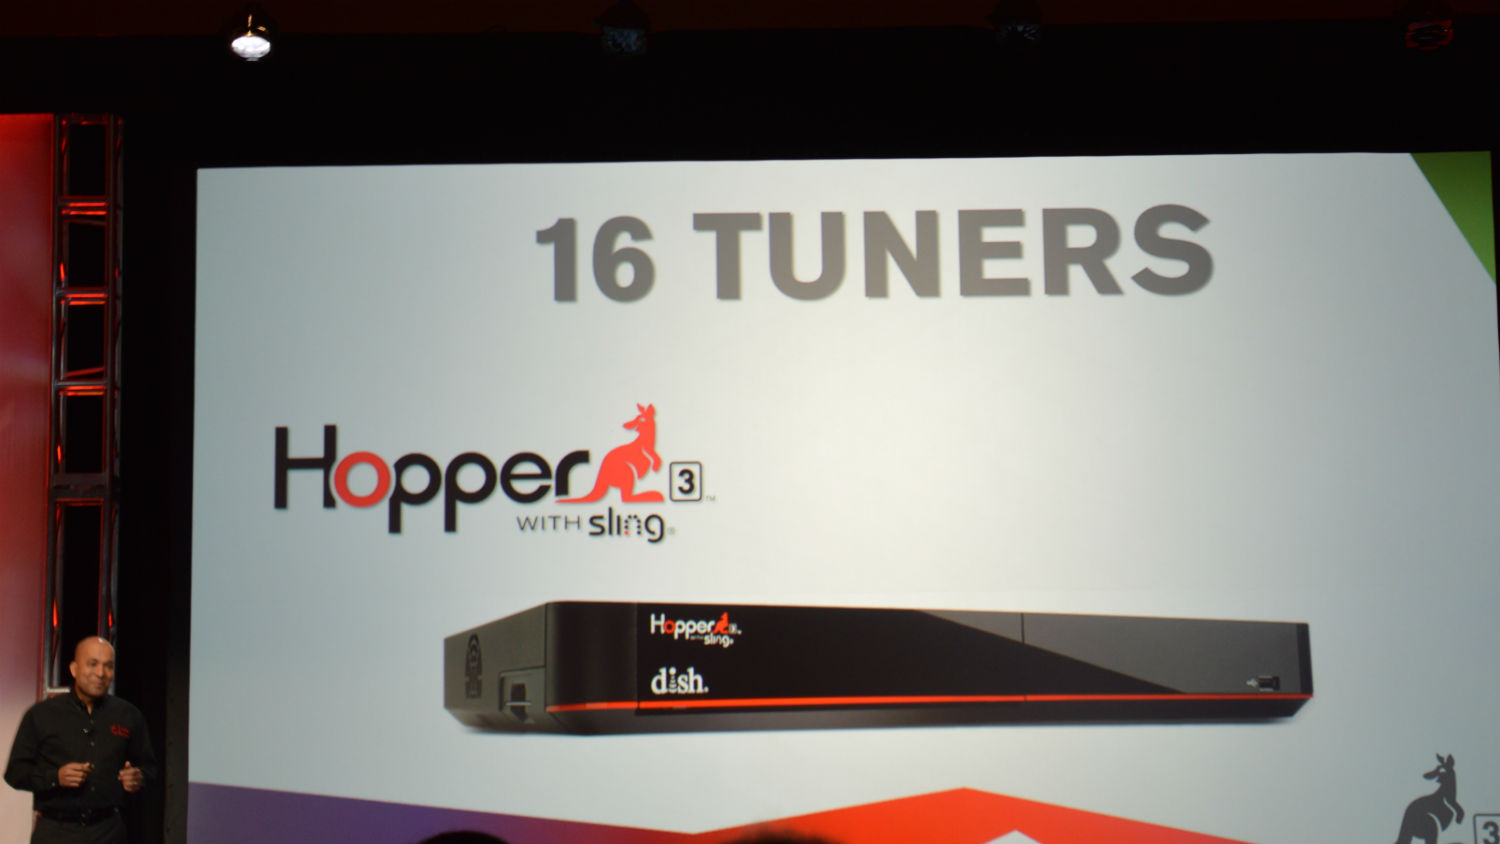 Hoppergo brings dvr content into the wild while sling tv adds espn3